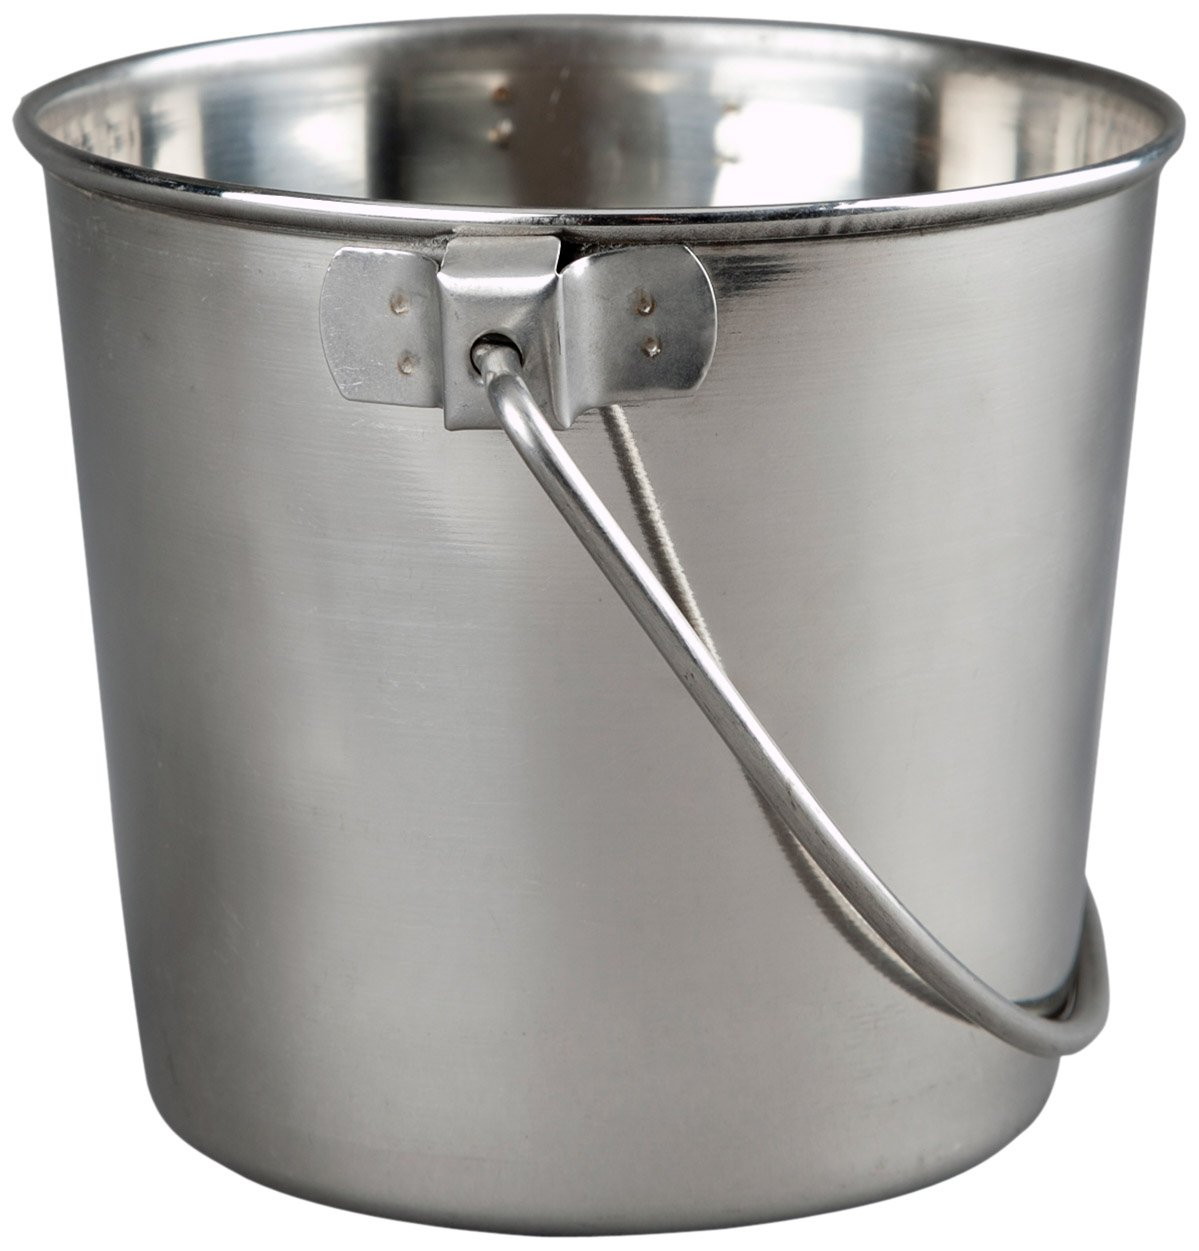 Advance Pet Products Heavy Stainless Steel Round Bucket, 6-Quart by Advance Pet Products